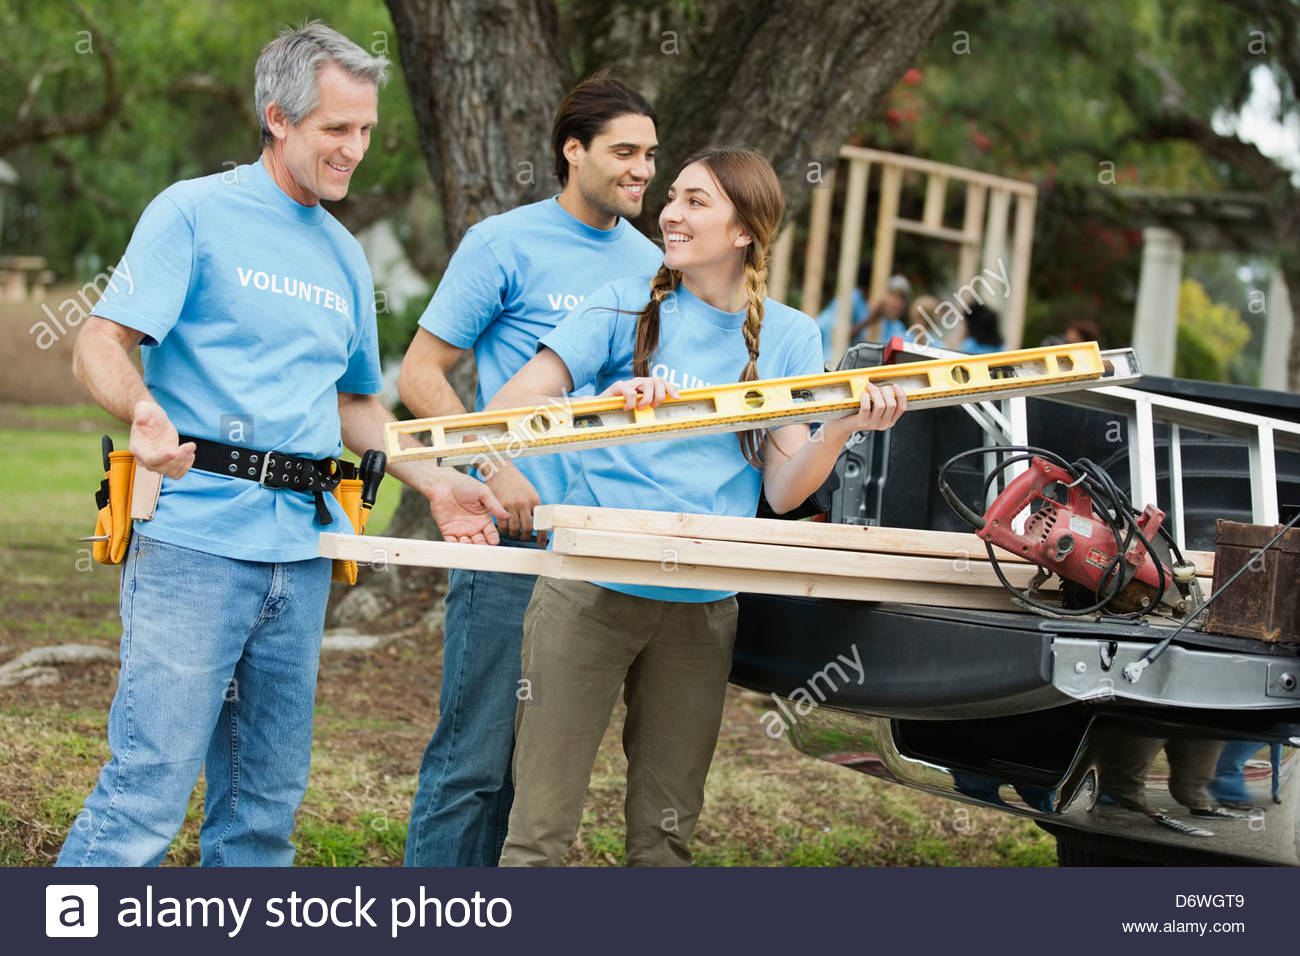 Three volunteers unloading work tools from vehicle in park - Stock Image